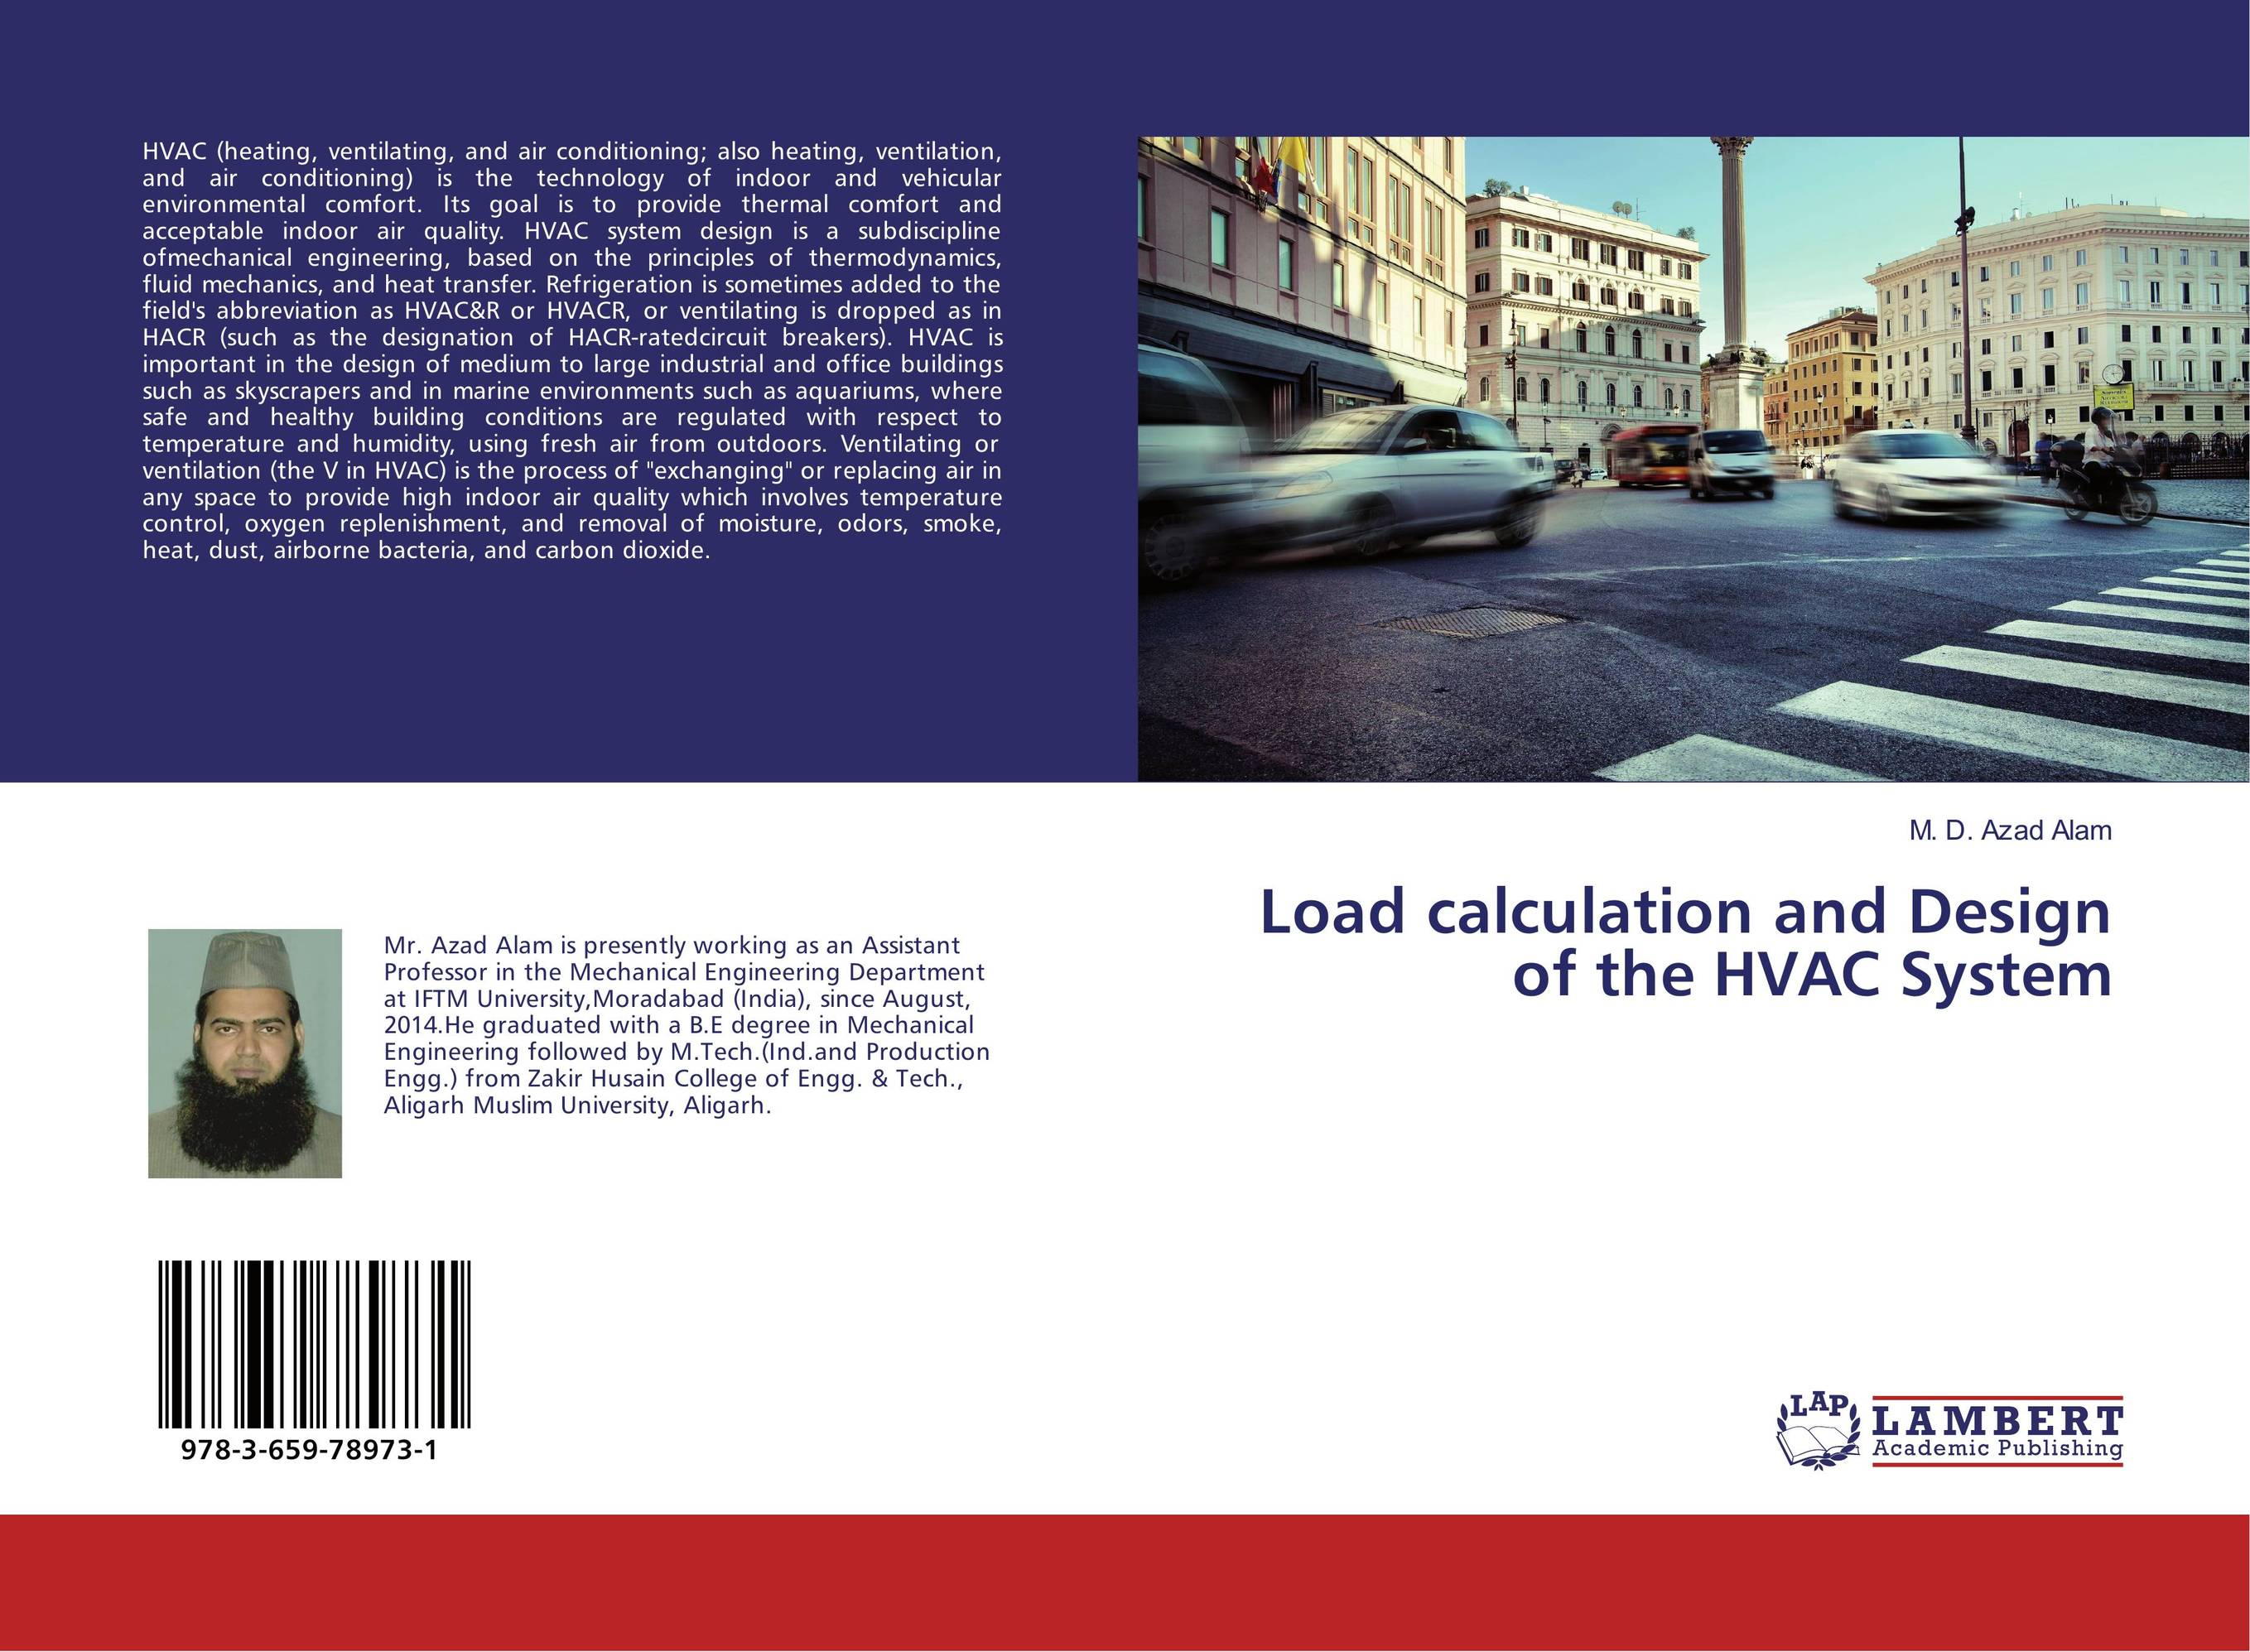 Load calculation and Design of the HVAC System